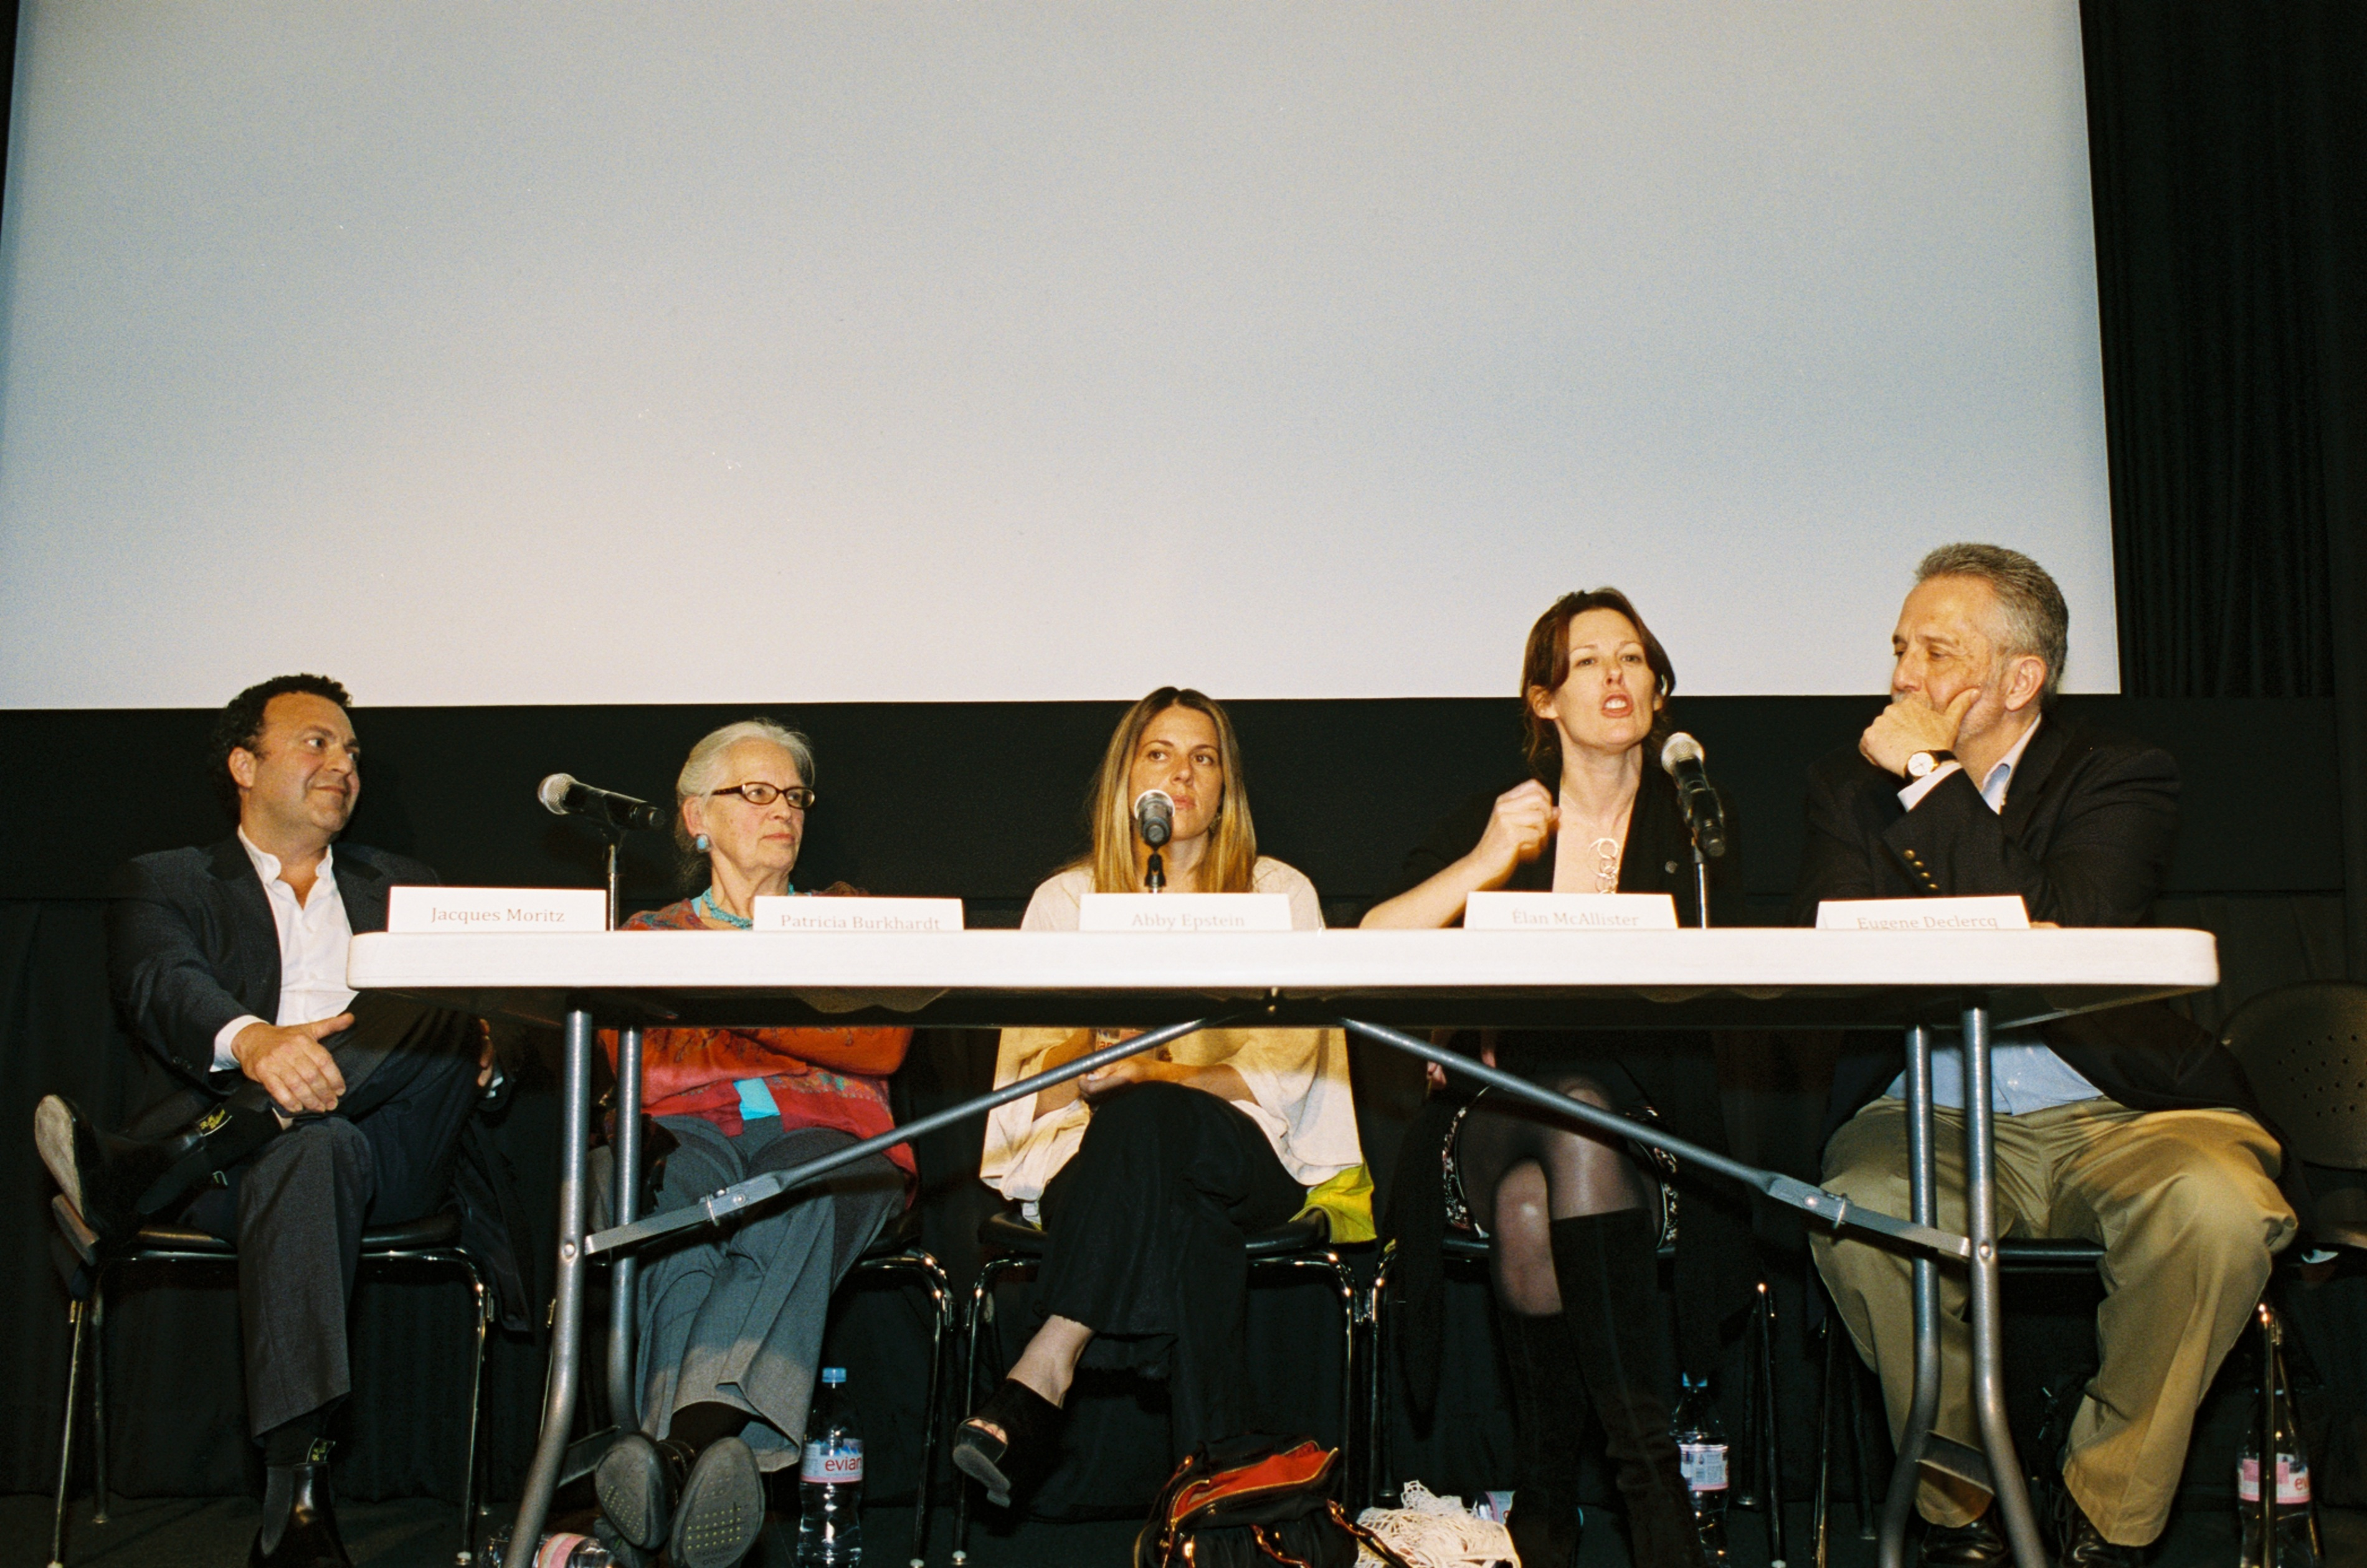 Panelists on April 25th (photo credit Alice Garik)